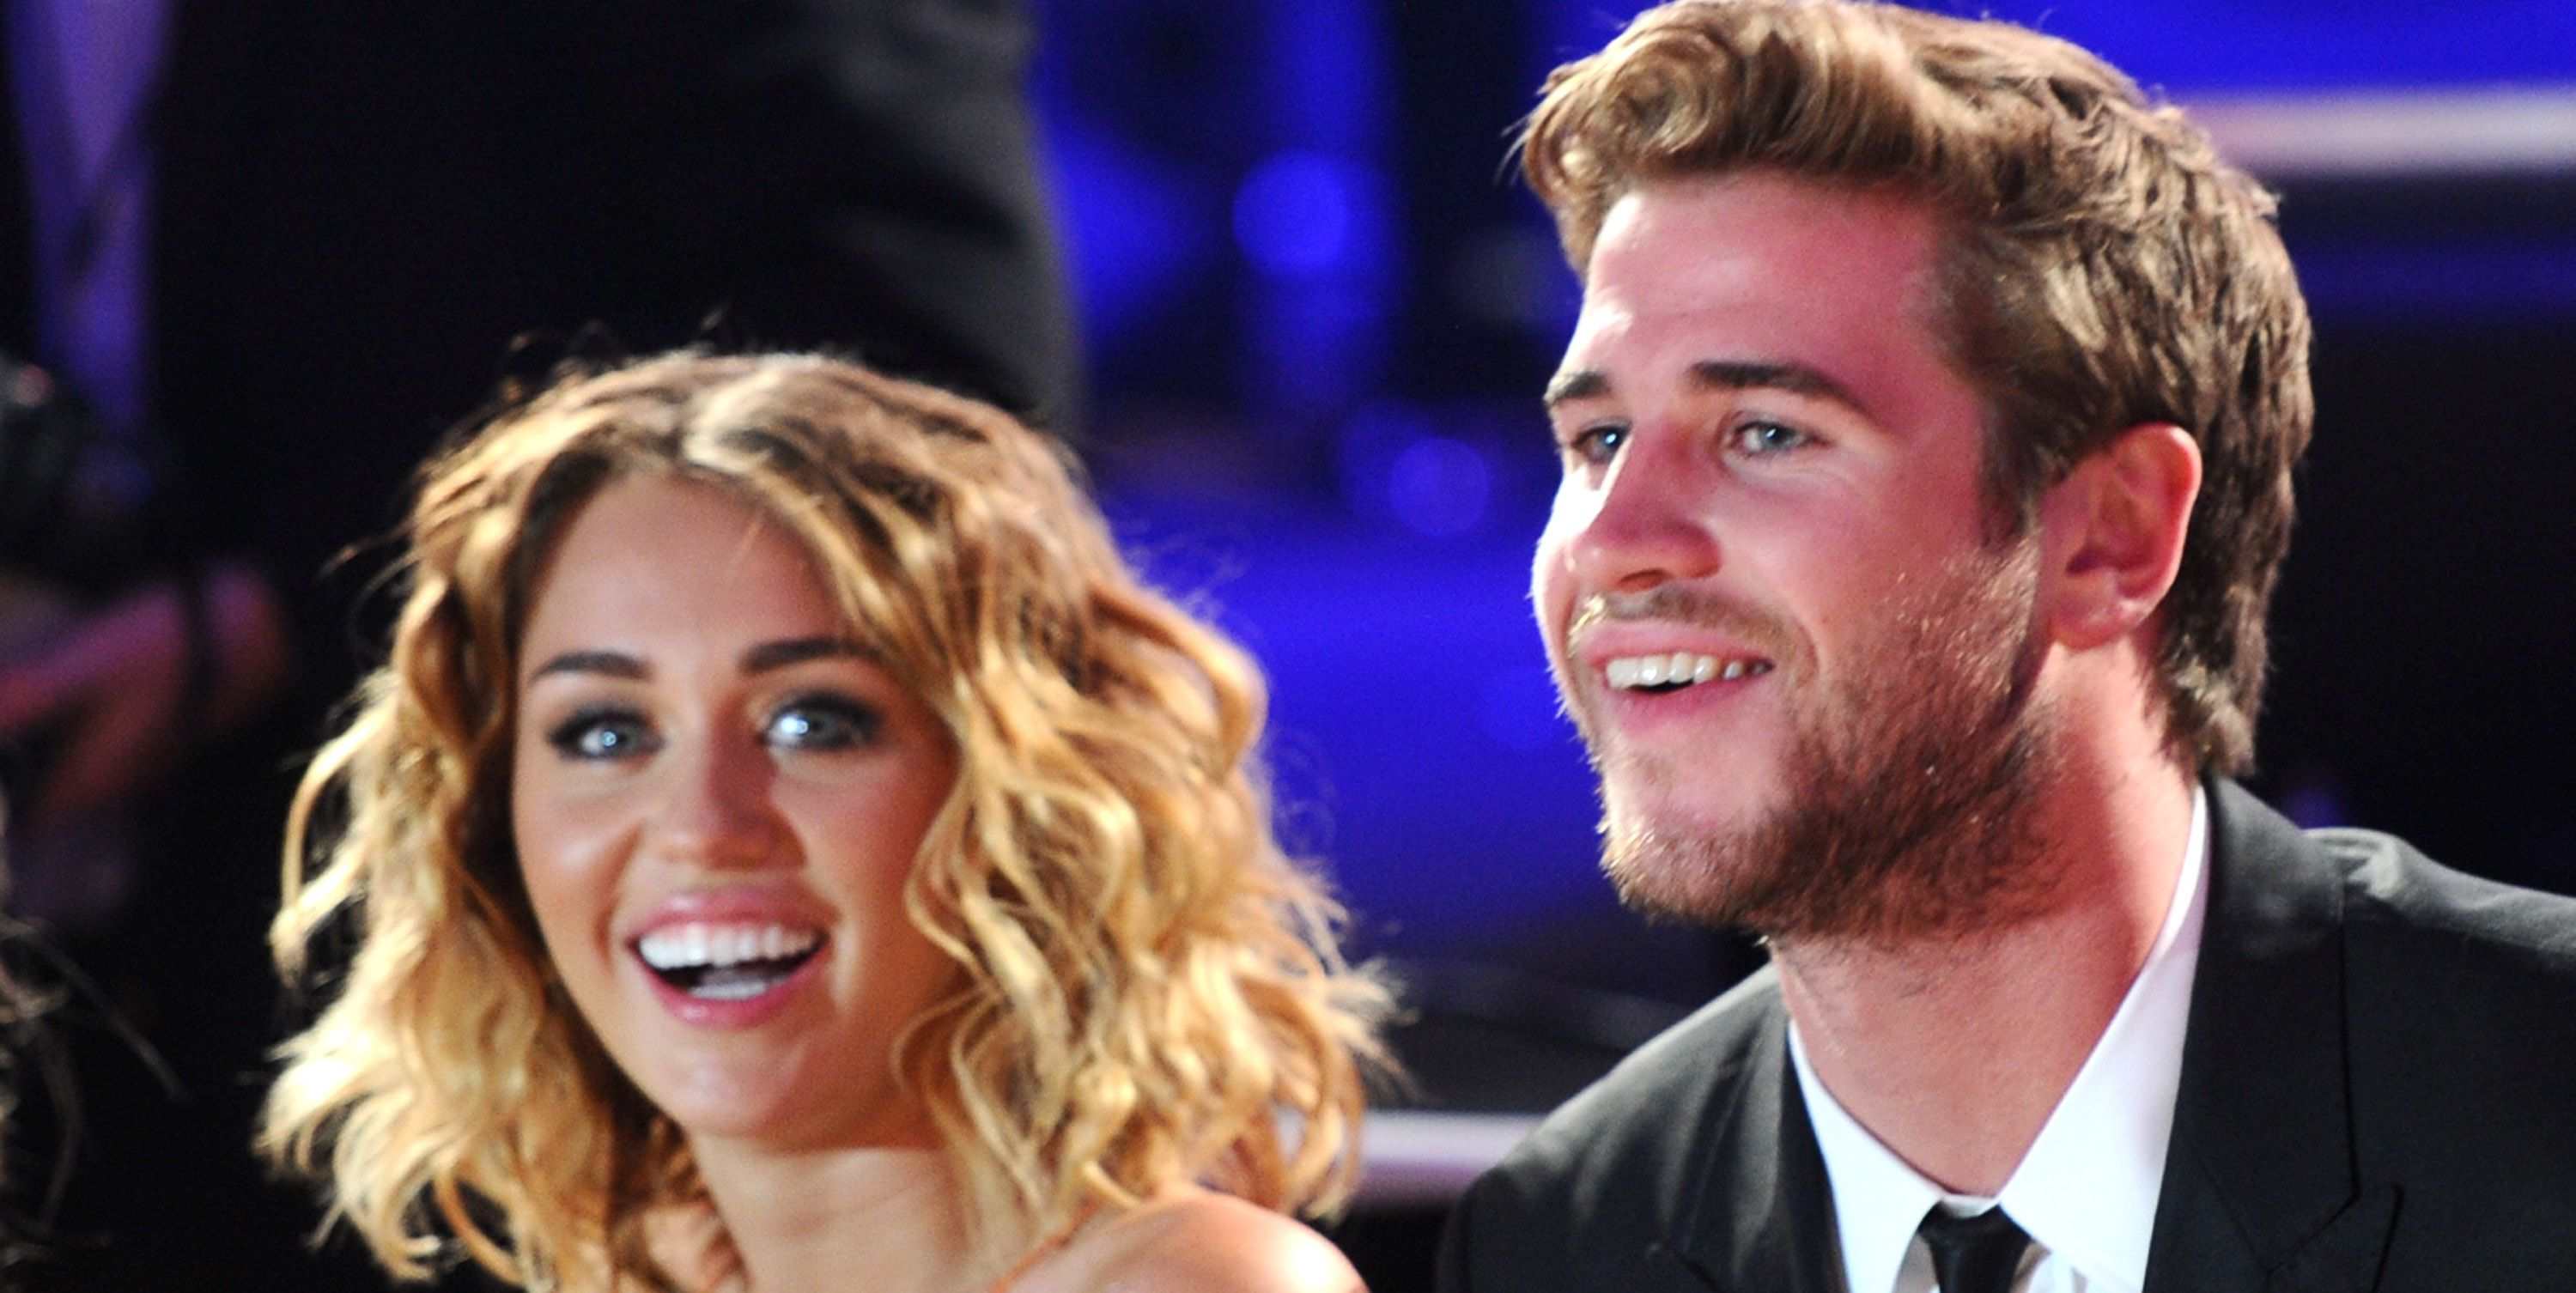 Miley Cyrus and Liam Hemsworth Win Valentine's Day With This Incredible Photoshop of Liam in a Dress